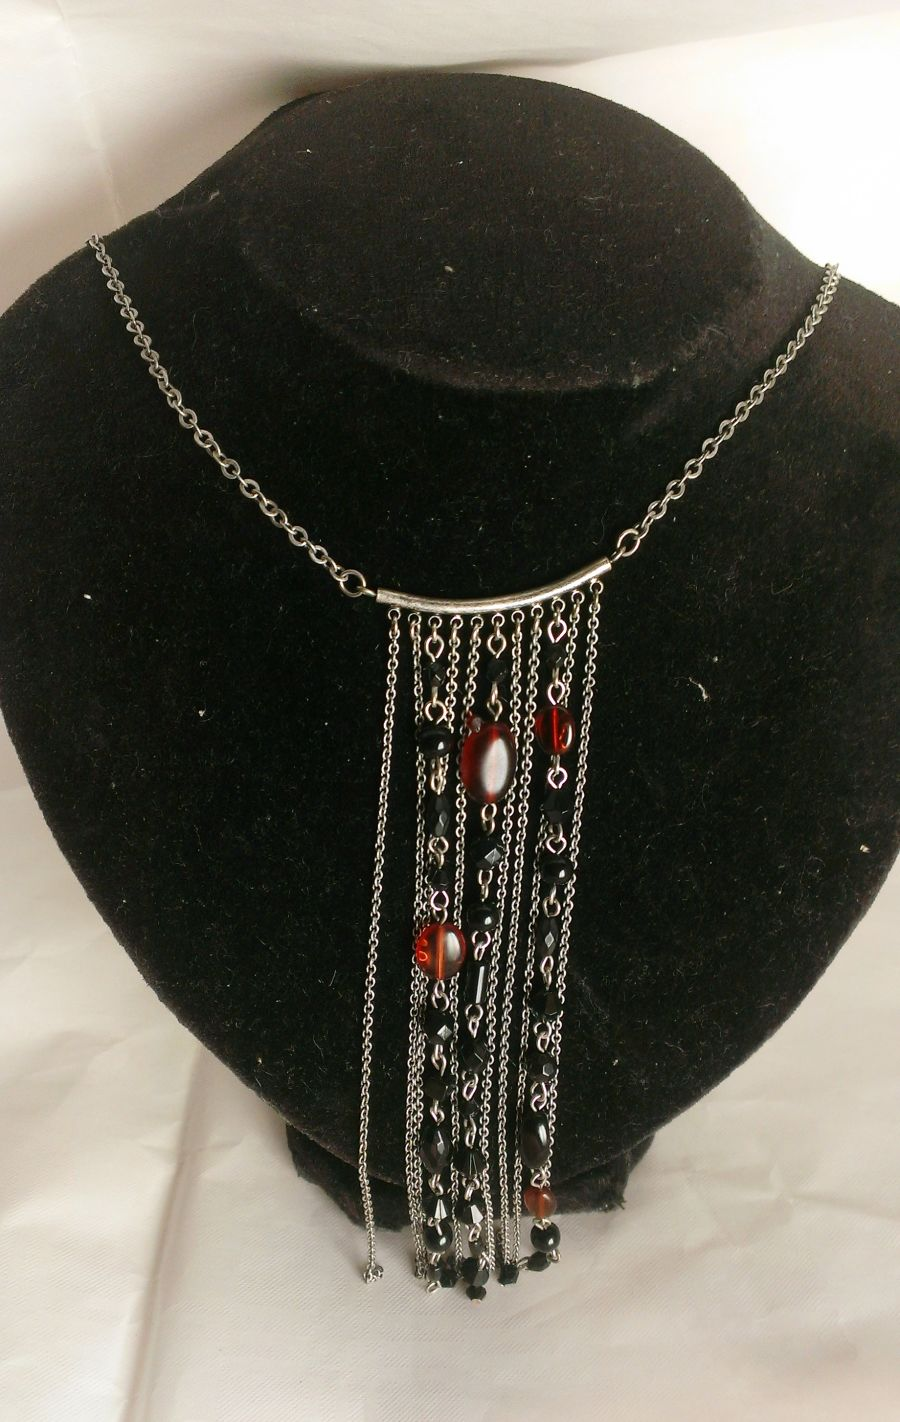 Beaded Ornate Chain Drop Necklace